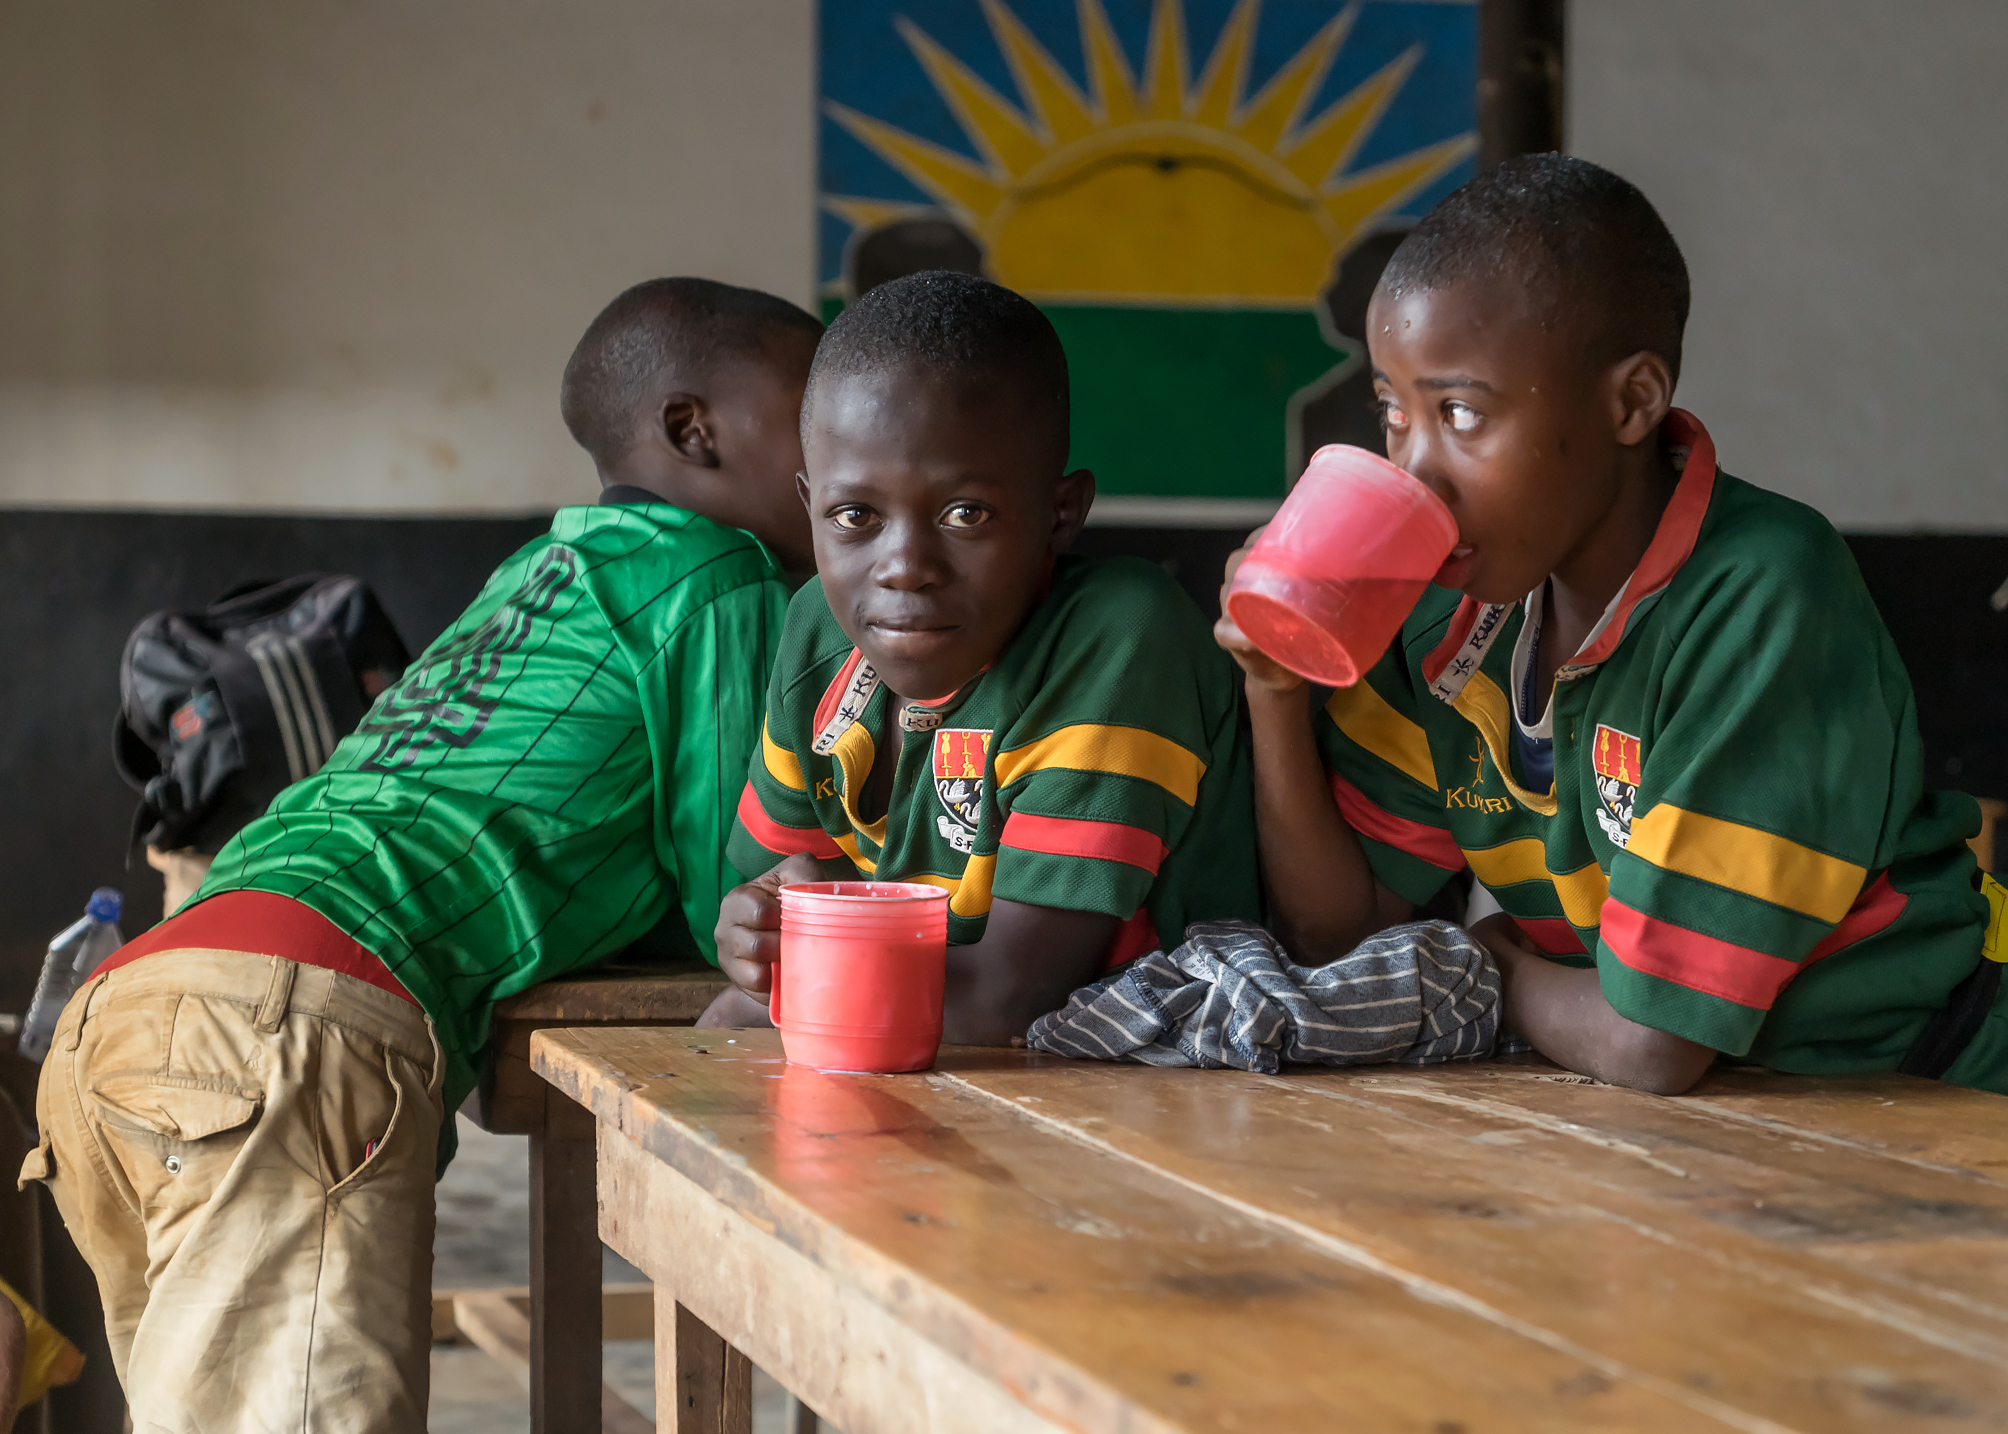 Sheltering from the storm, Rwandan Orphans Project